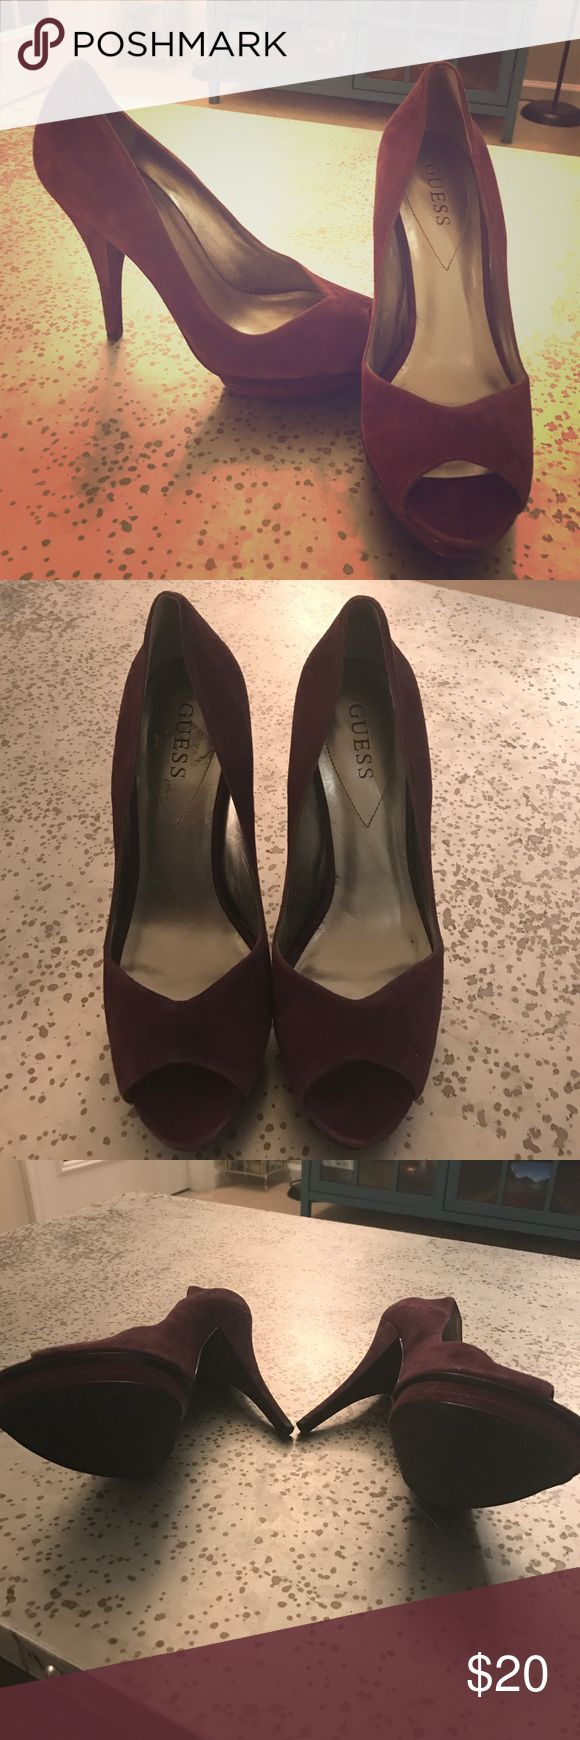 """Guess Purple Suede Platform Pumps 8.5 Gorgeous purple peep toe suede pumps! 8.5, about a 4"""" heel, these pumps will rock your night out with the gals! Fits true to size. Message with any questions! Guess Shoes Heels"""